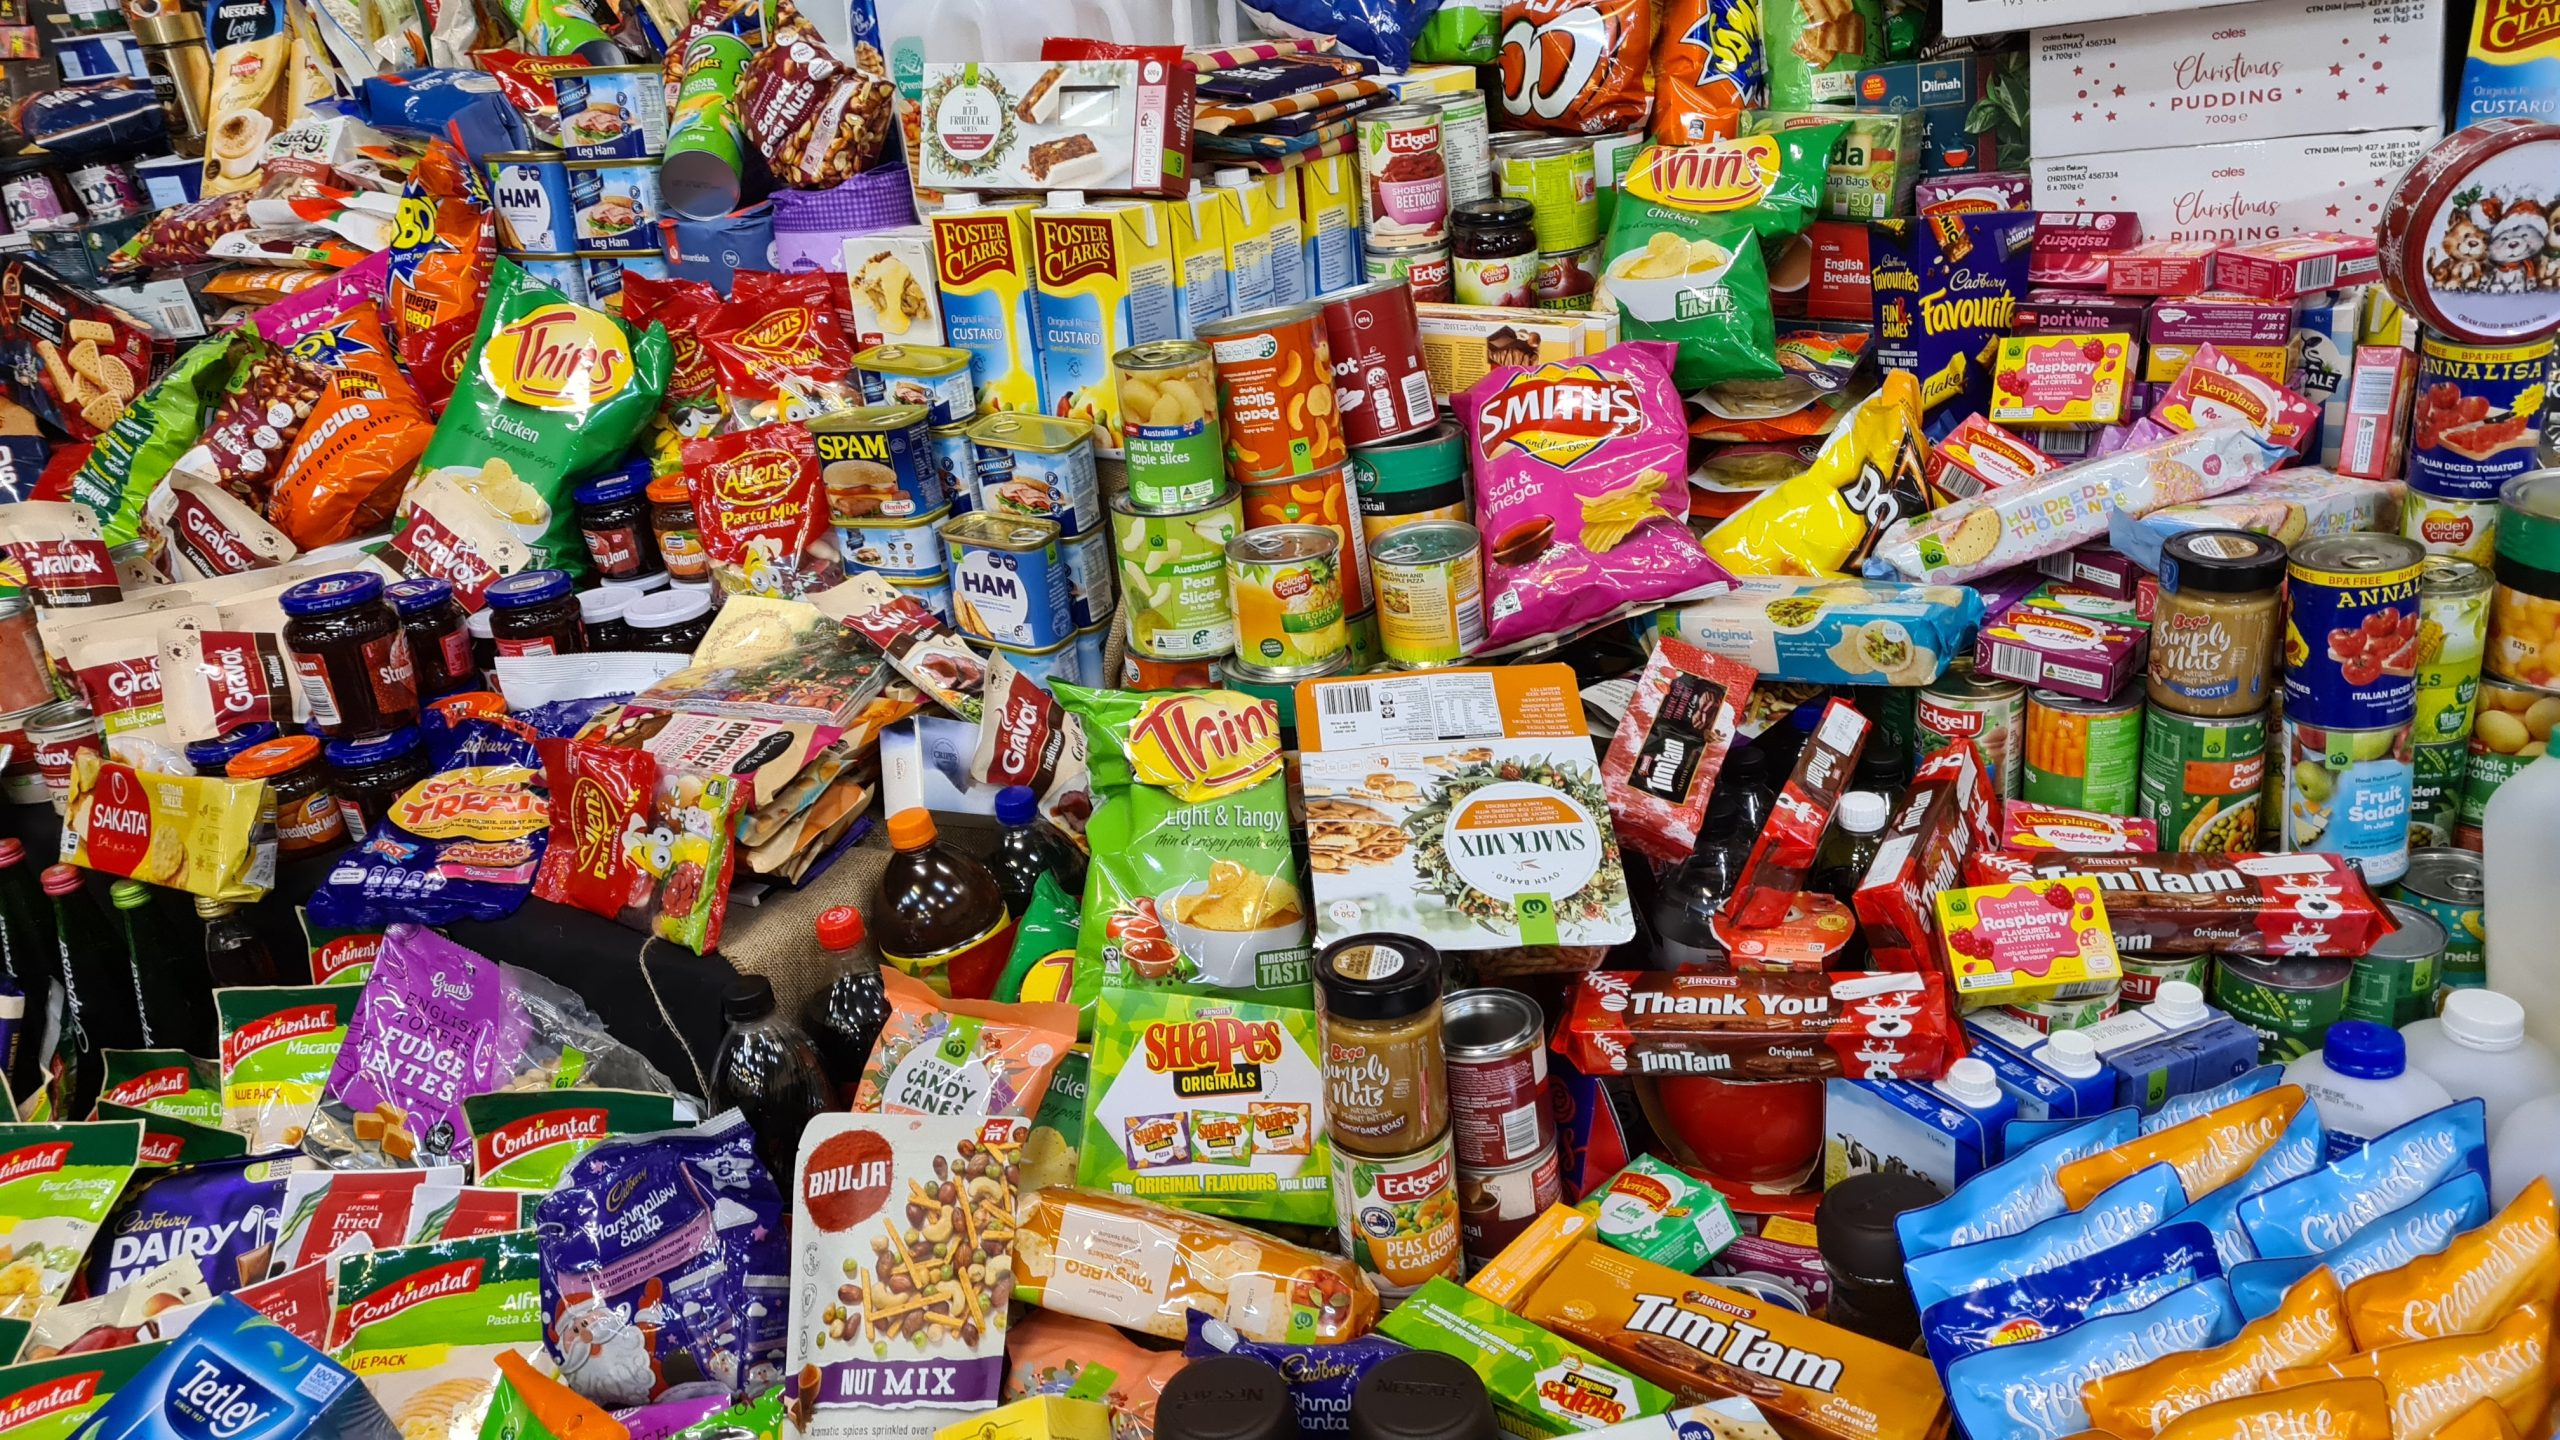 A selection of snacks